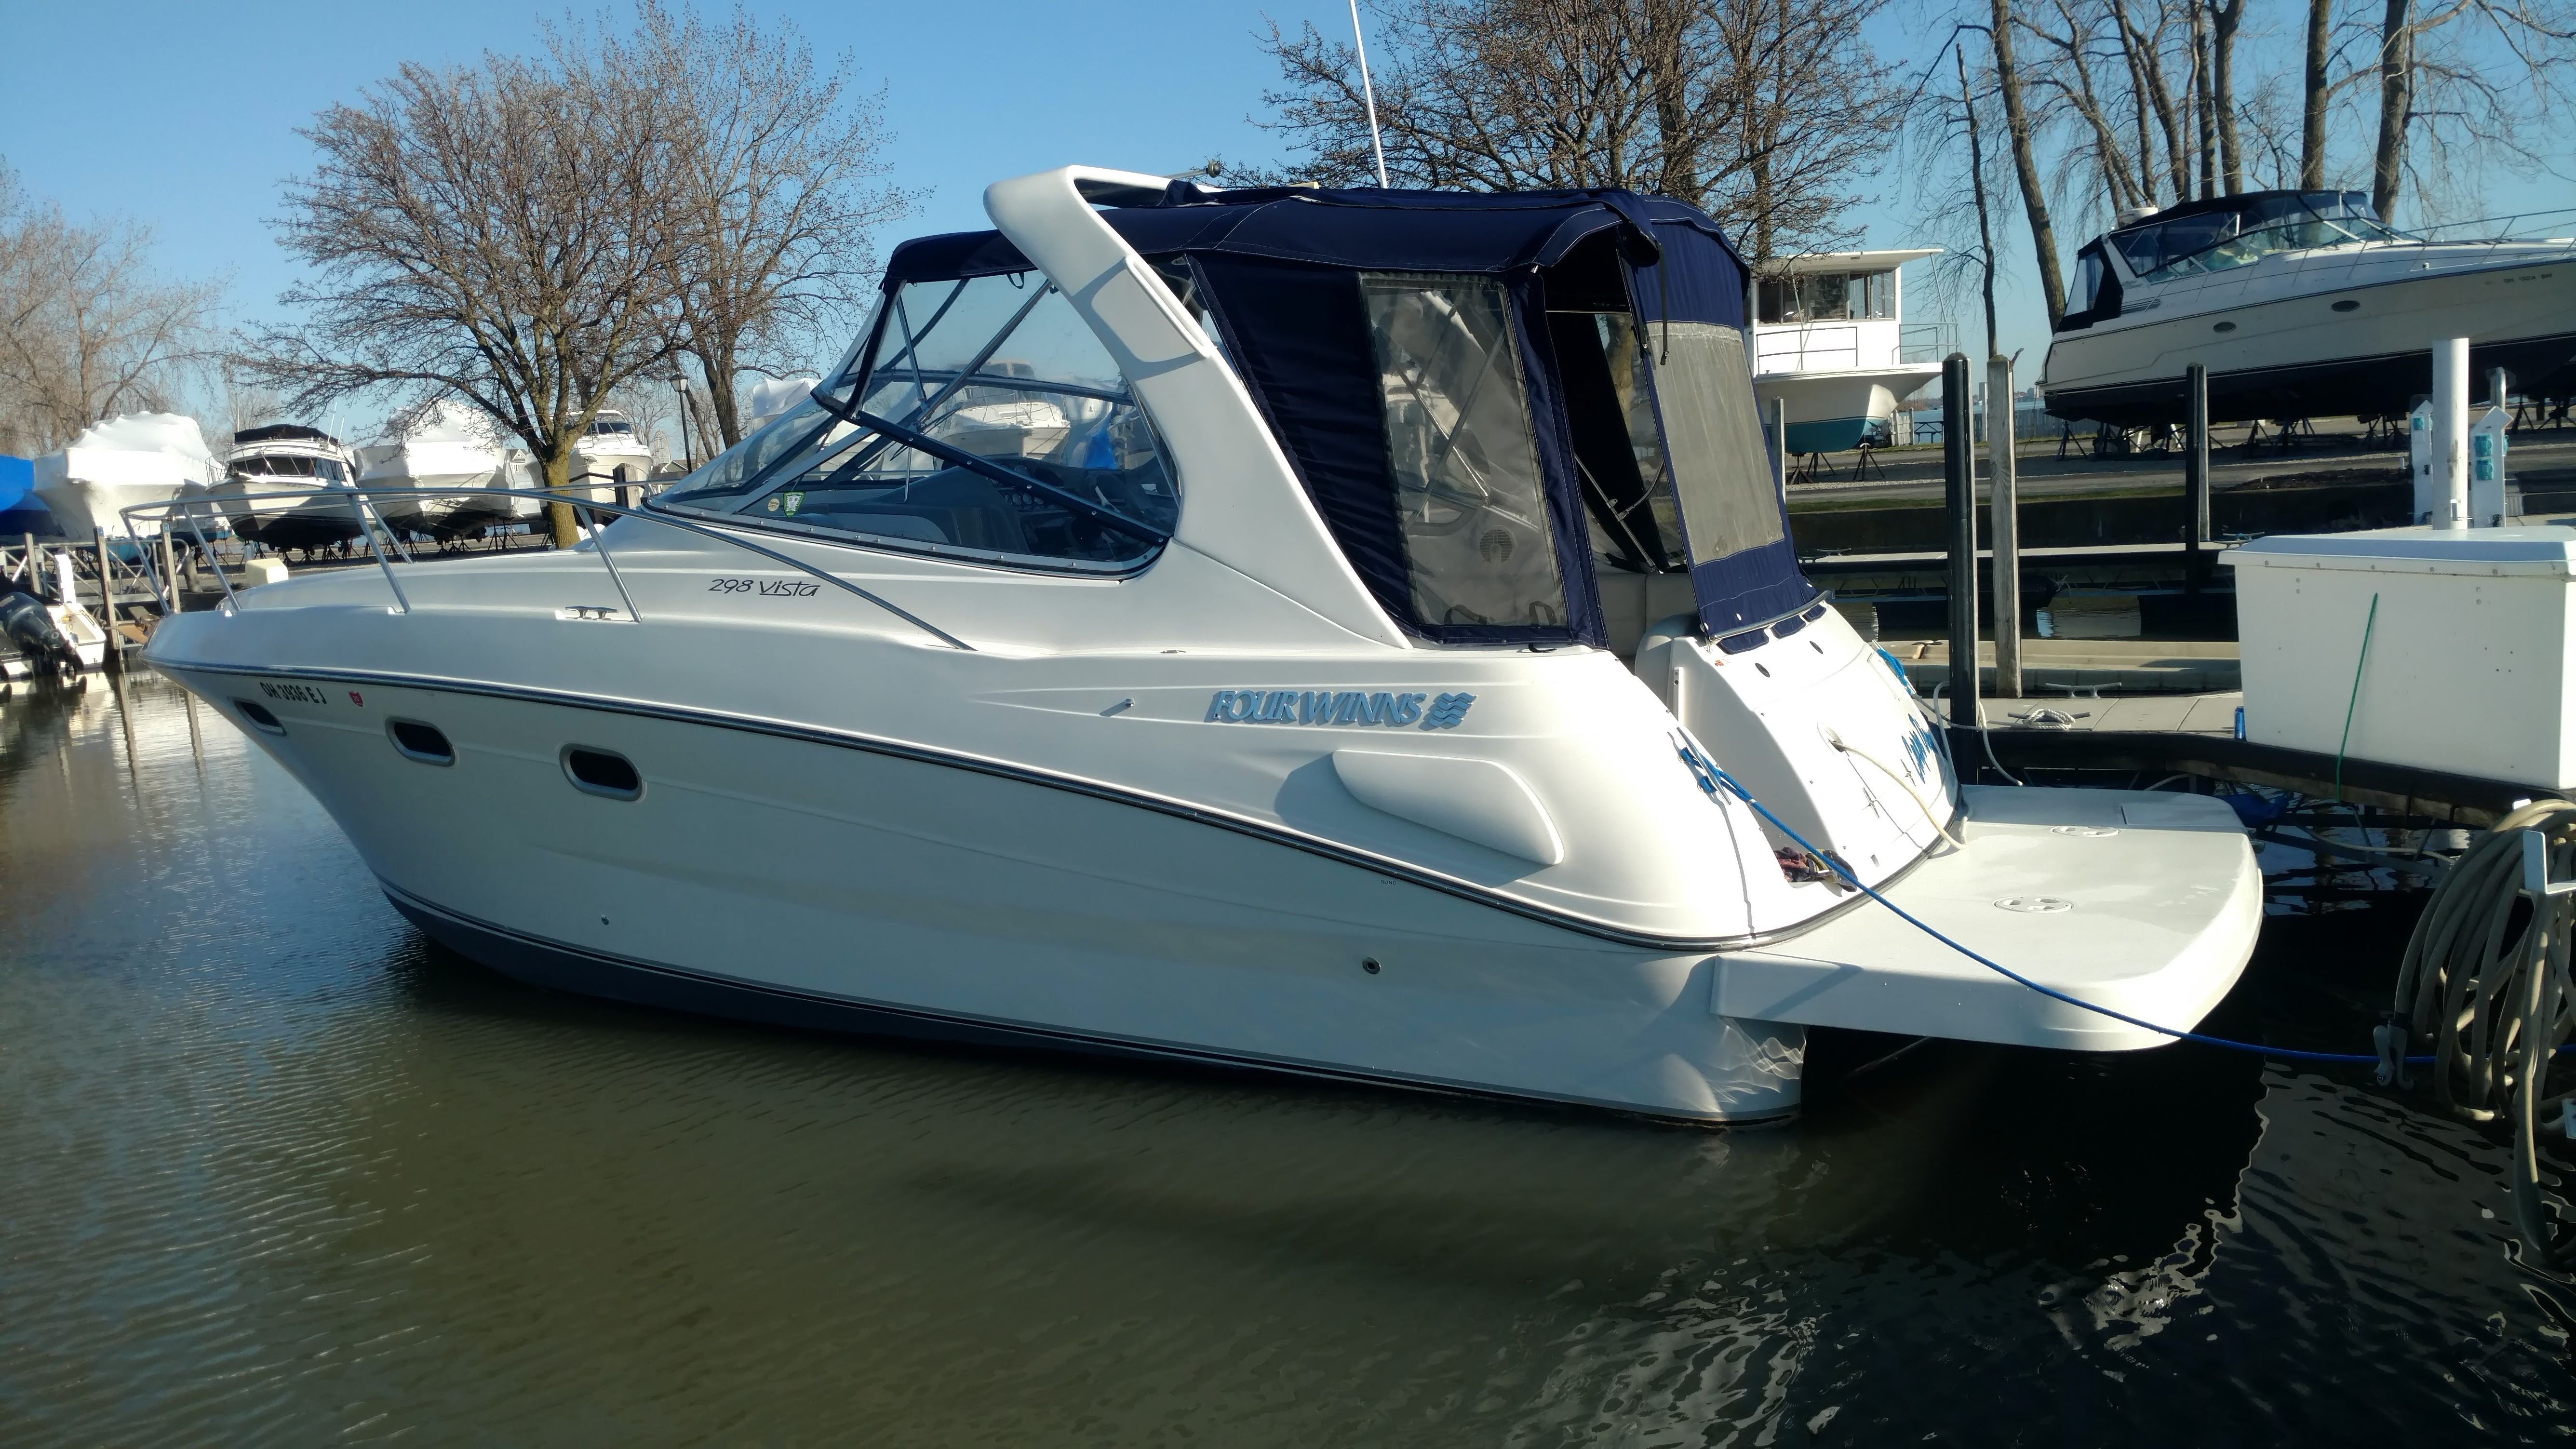 Four Winns boats for sale in Ohio - Boat Trader